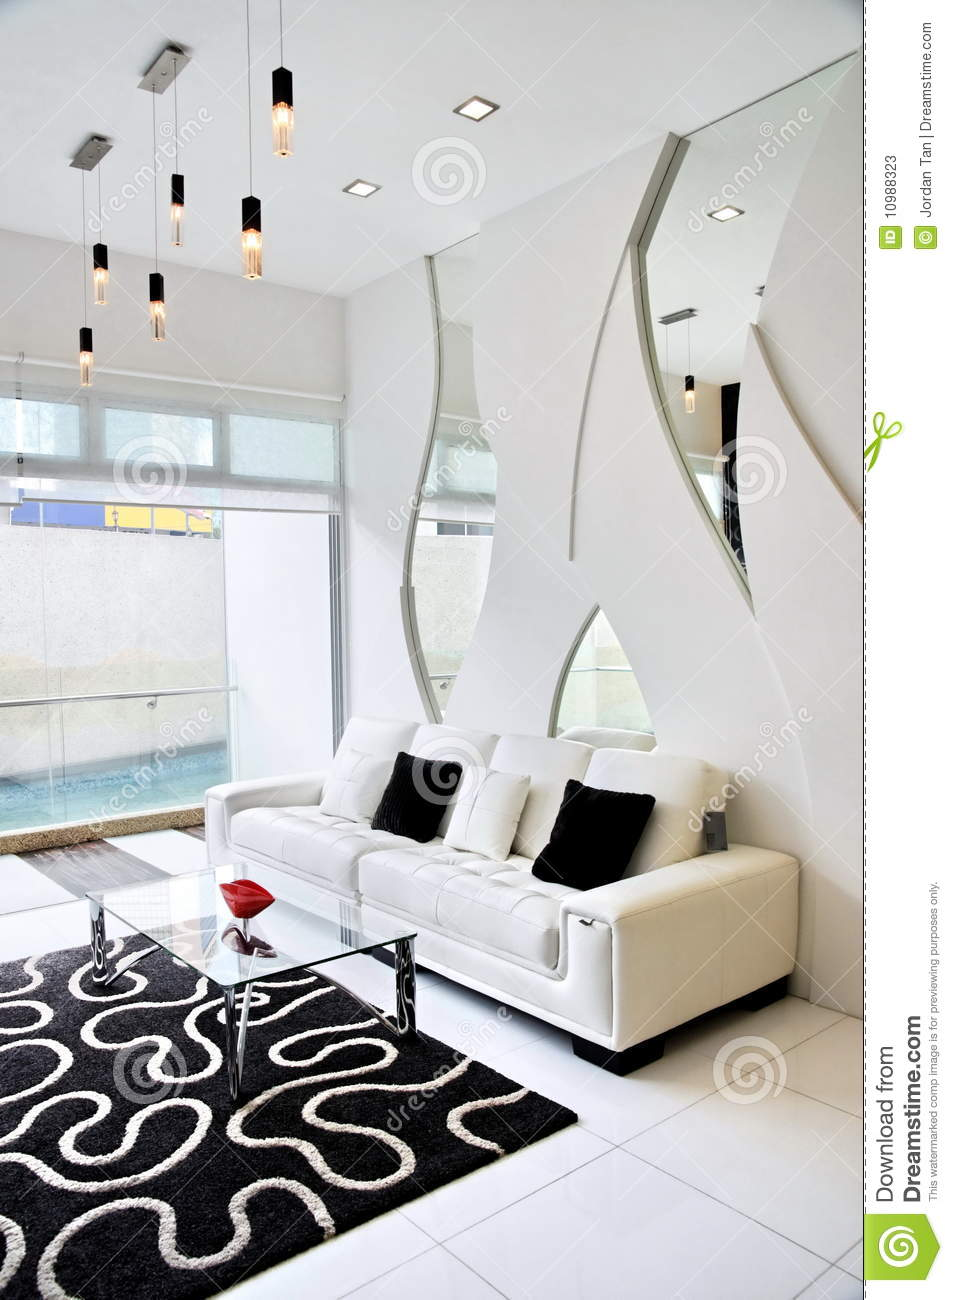 Living room with black and white color theme